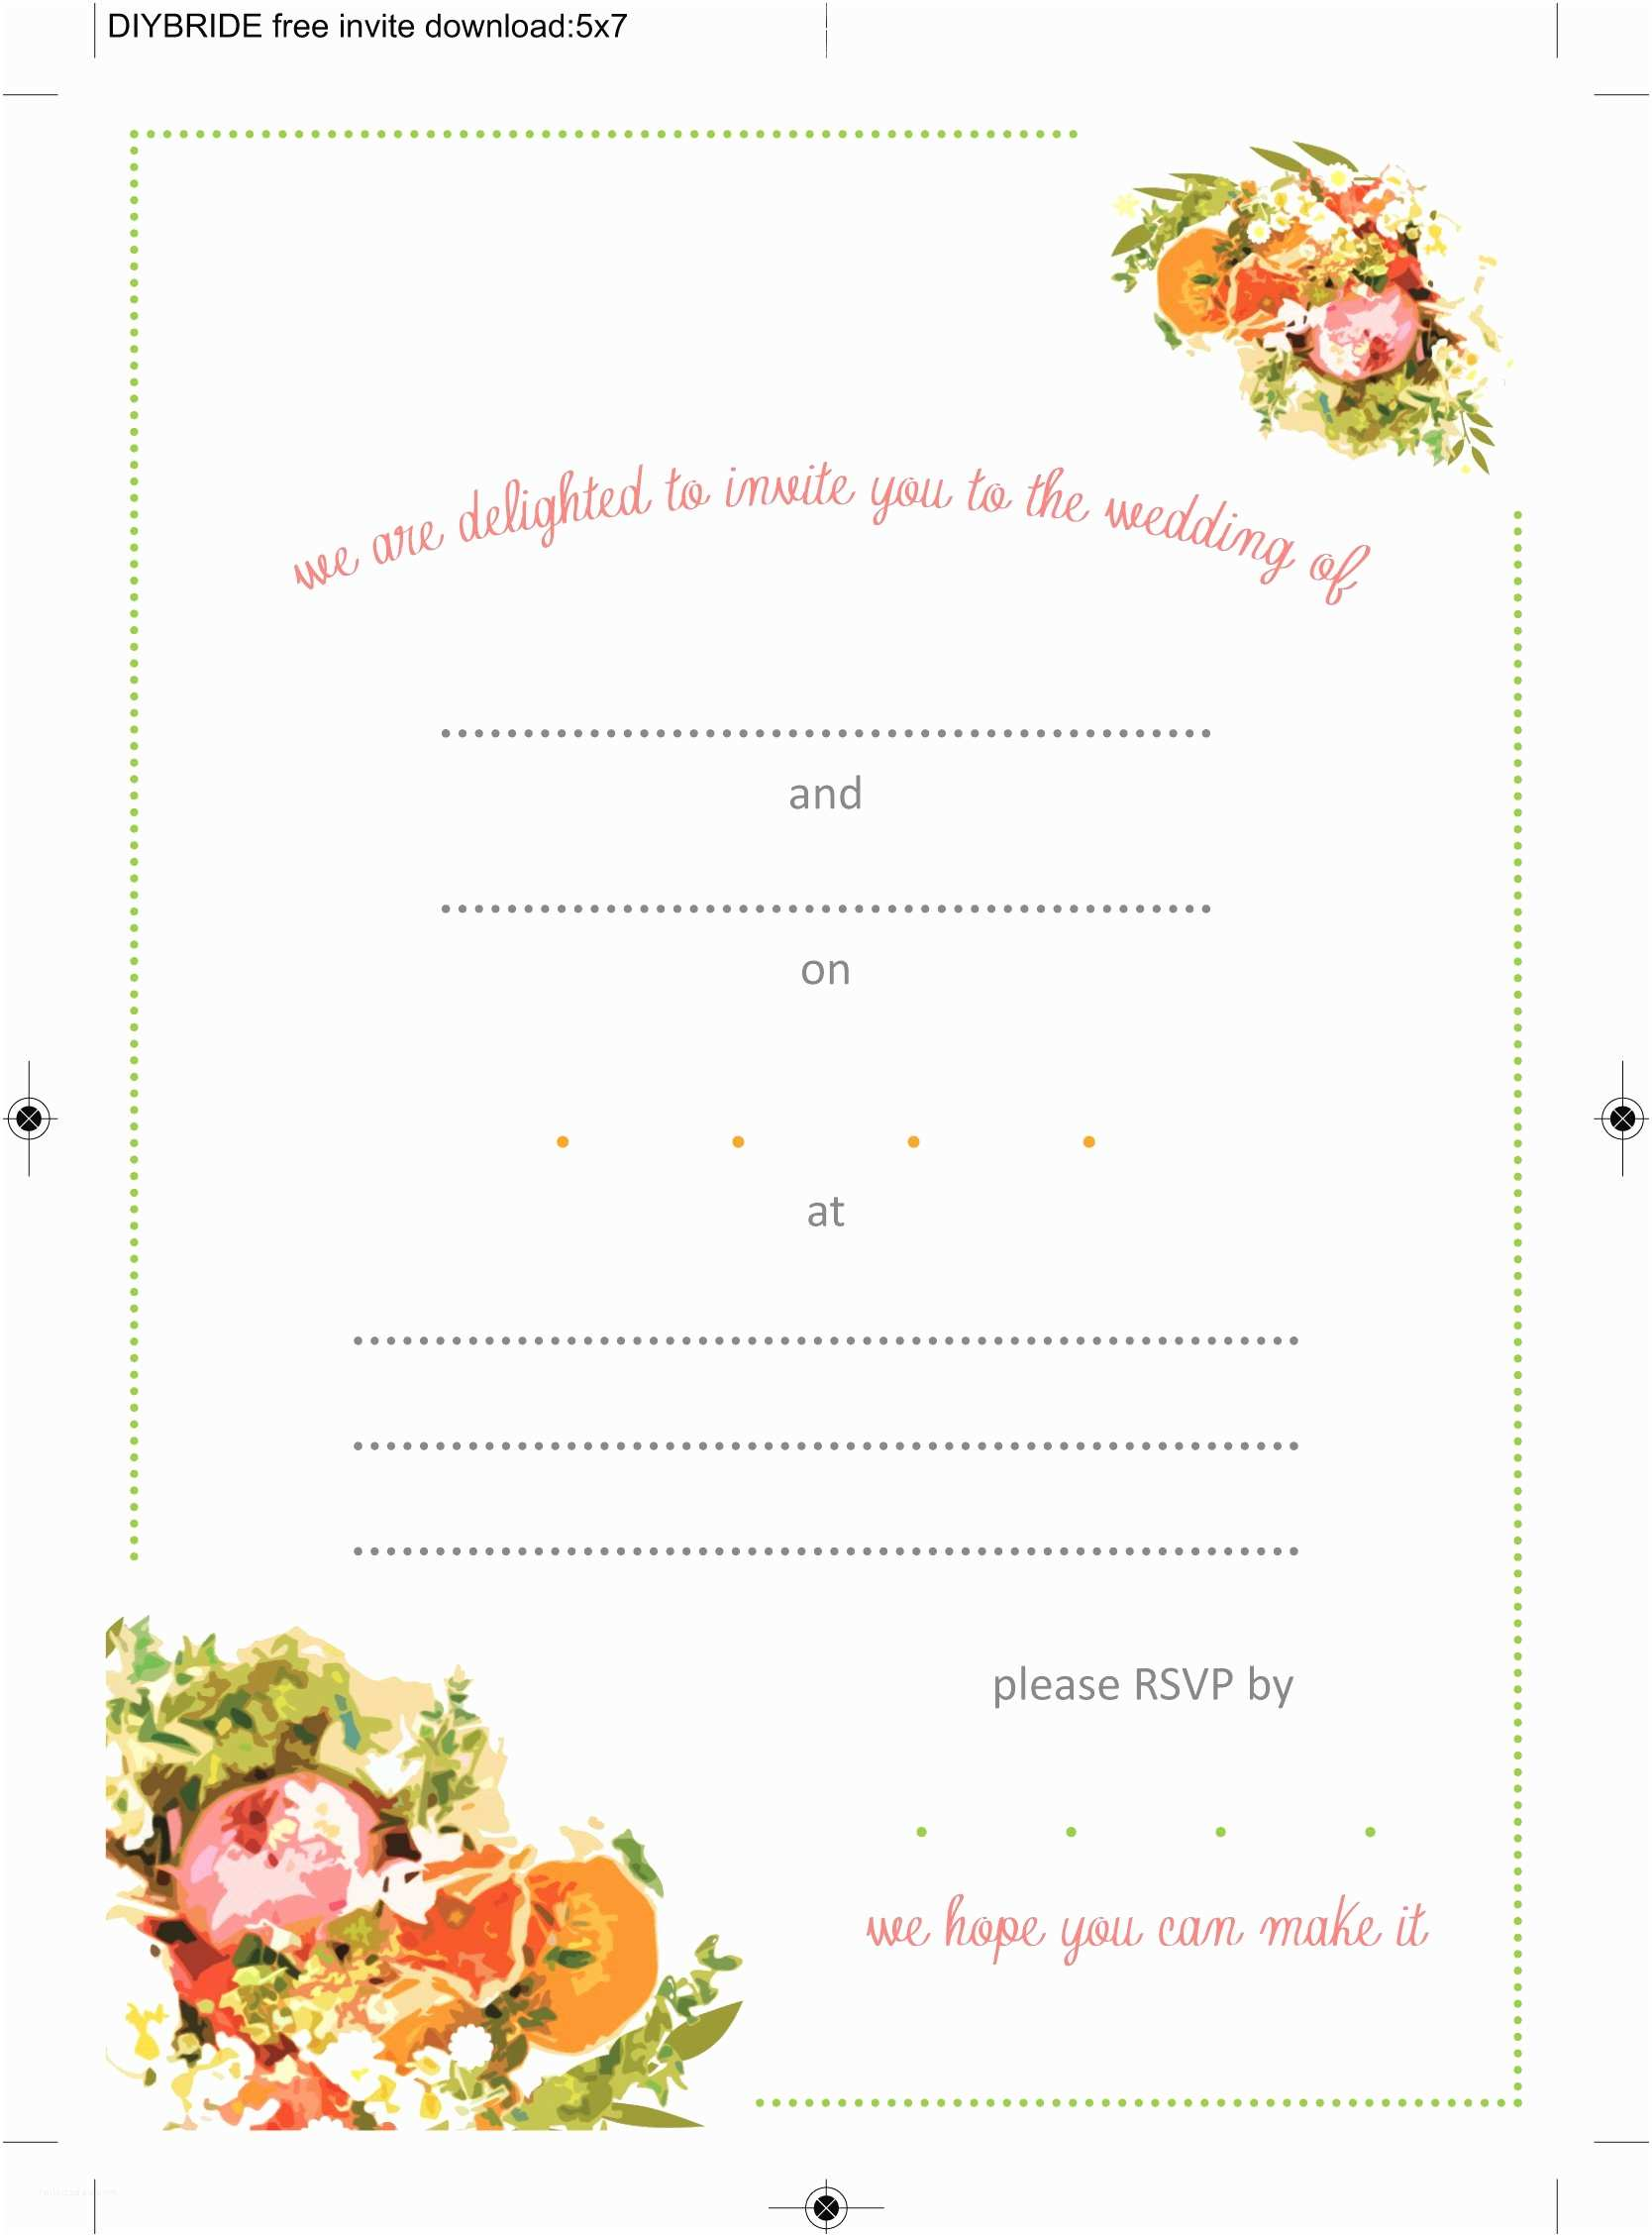 Online Editable Wedding Invitation Cards Free Download Wedding Invitation Templates That Are Cute And Easy